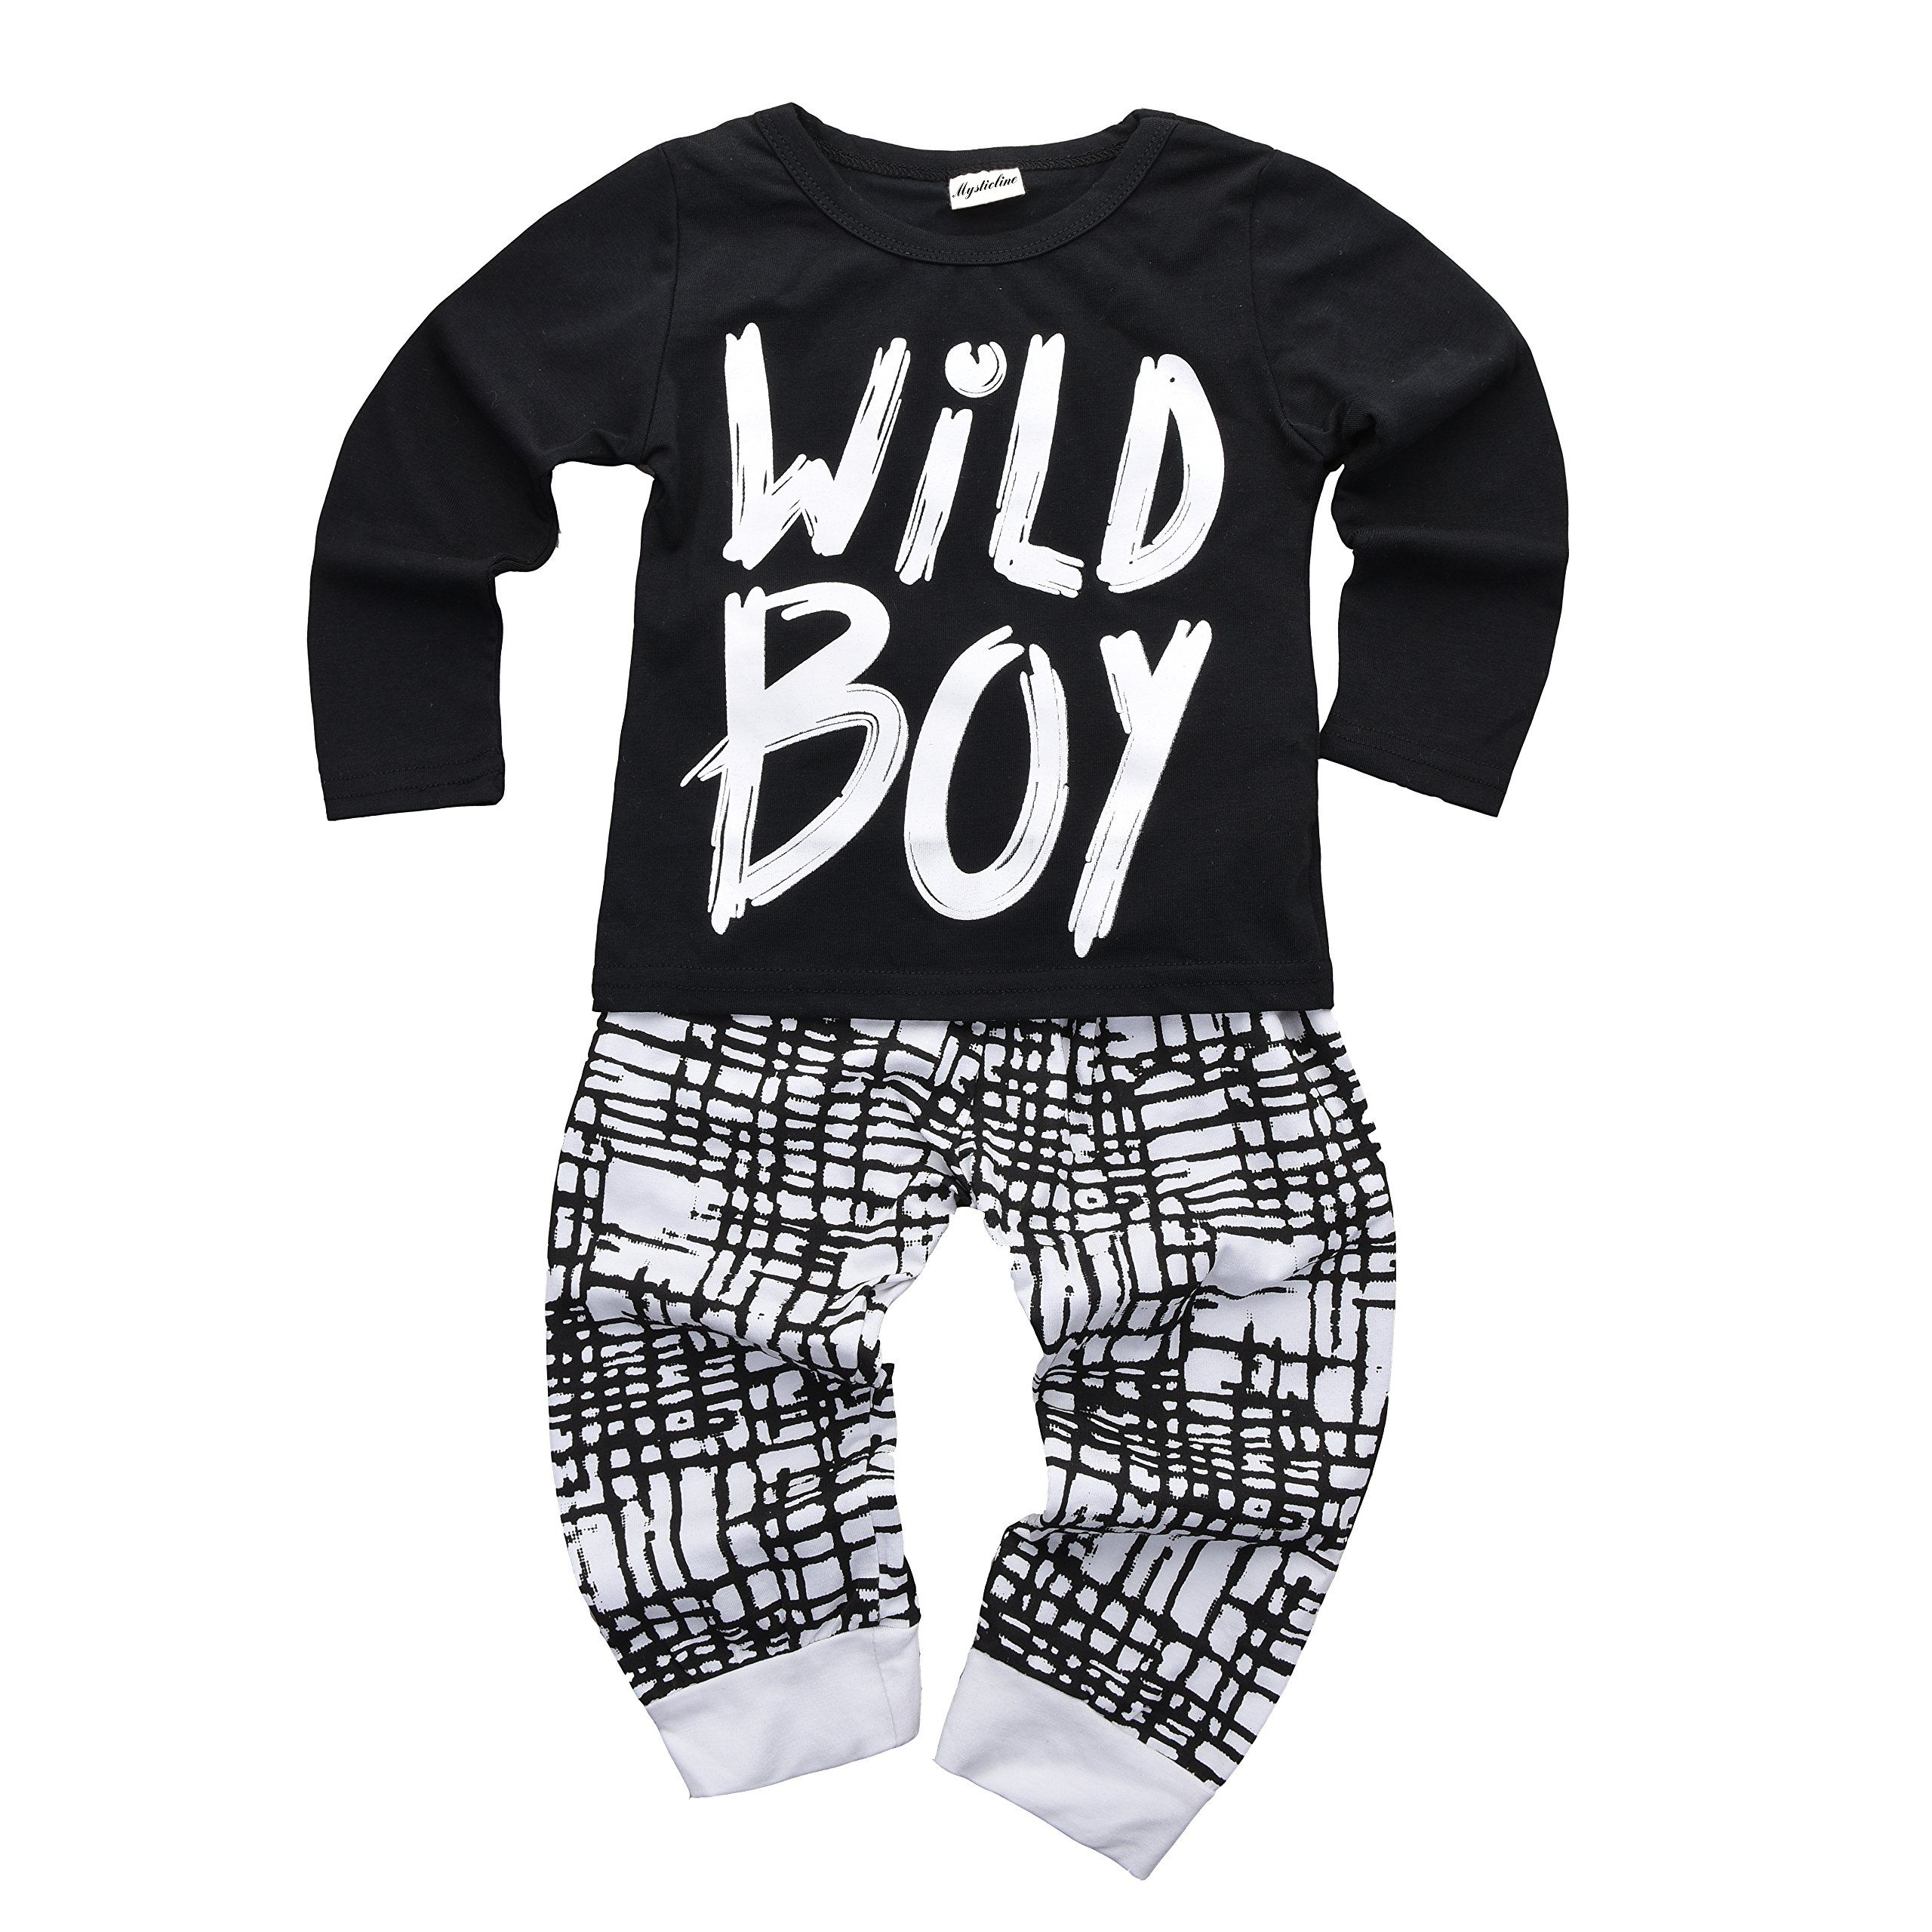 Baby Boys Clothes Set Short Sleeve Wild Boy Tshirt Pants Outfit Winter Spring Black 6 12 Months Tag Size 80 You Baby Boy Outfits Baby Boy Pants Boy Outfits